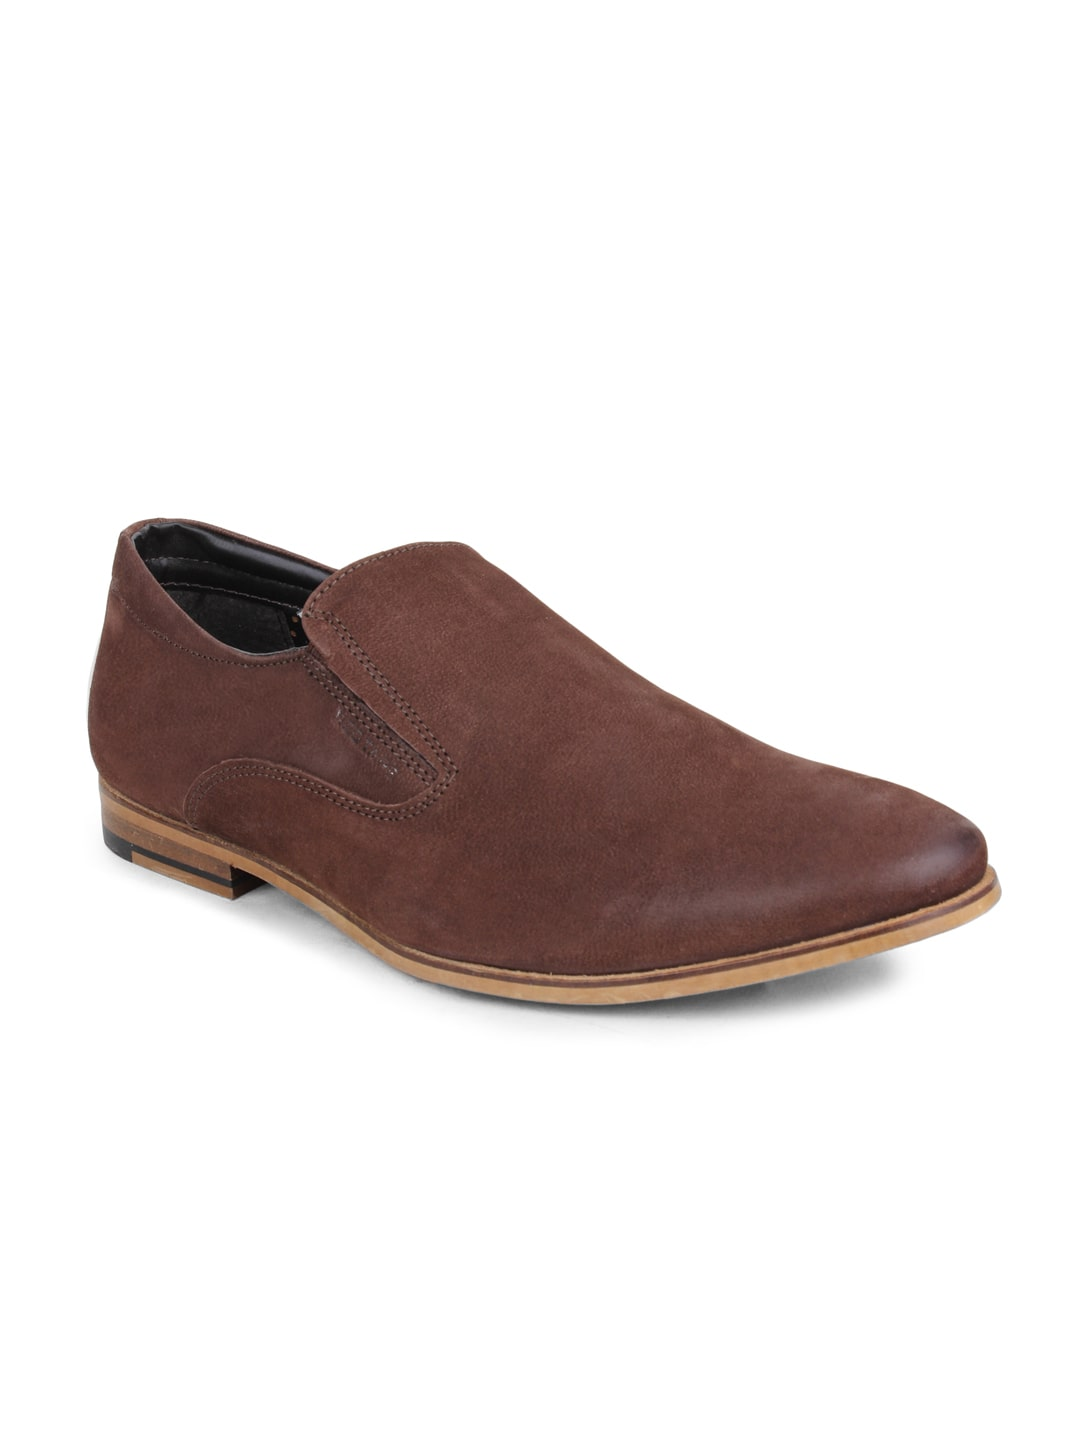 red tape men leather brown casual shoes